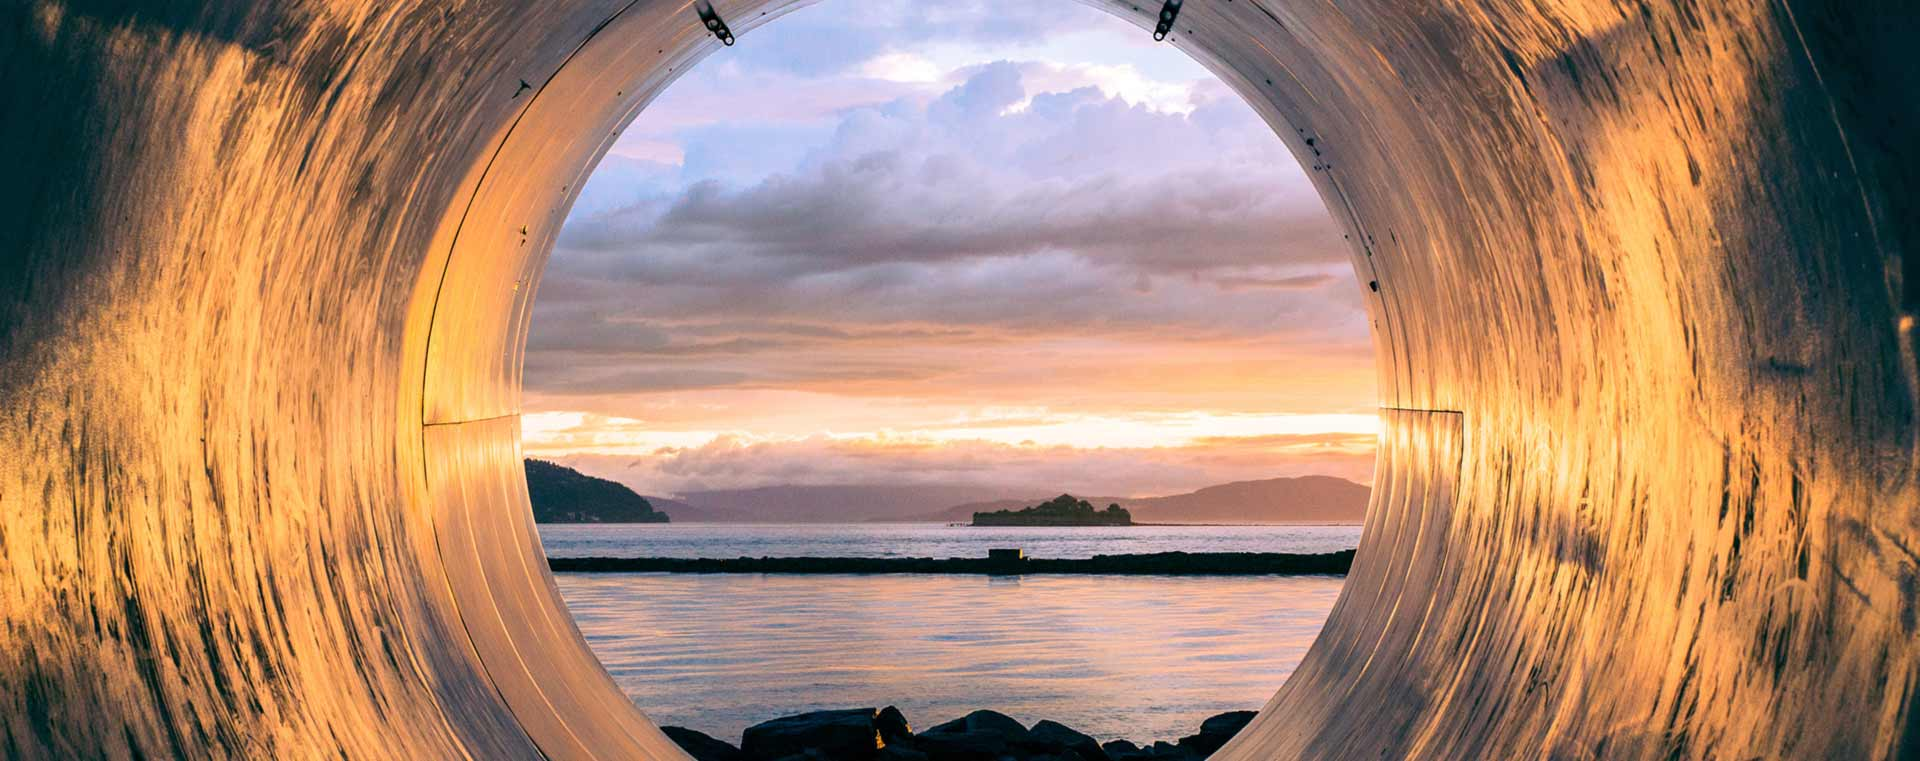 sunset-sea-through-tunnel-hole